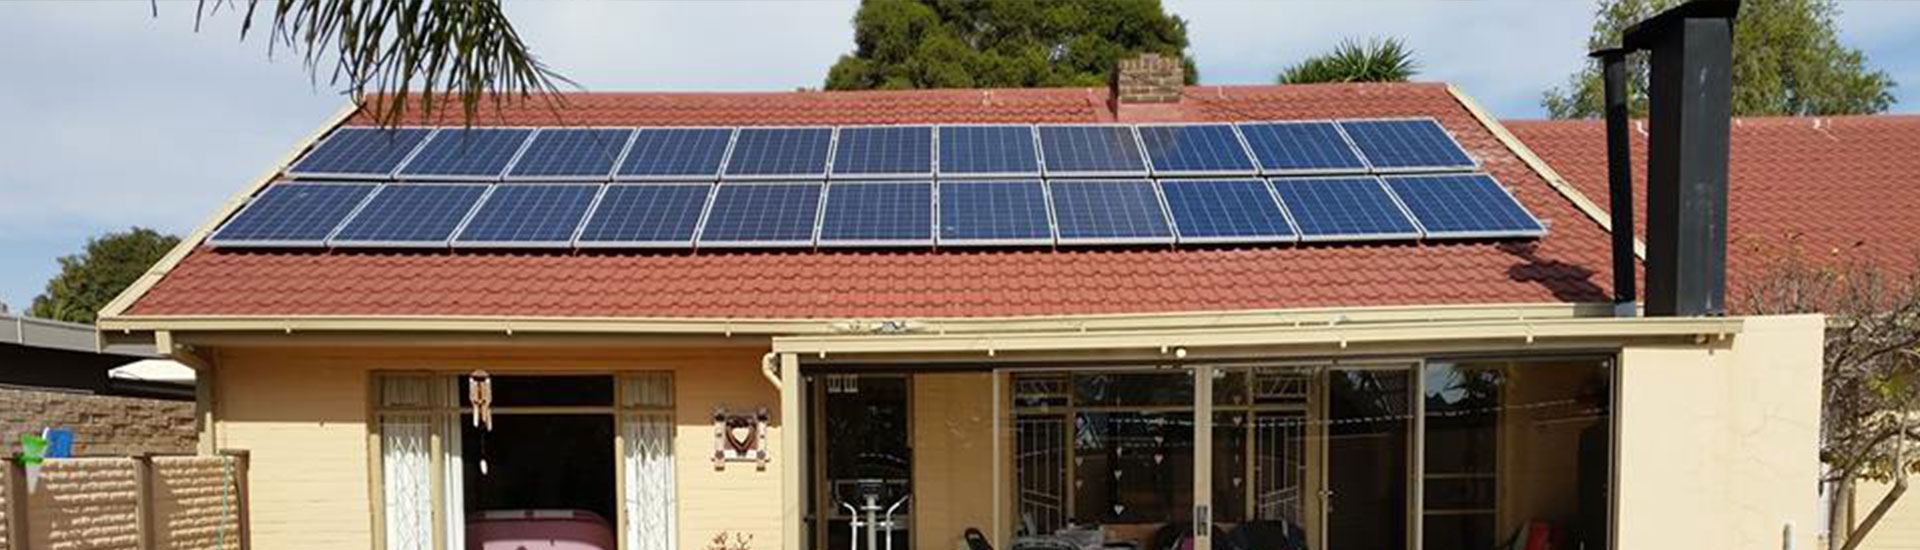 Eco Trades: Solar Power Systems for Residential Homes